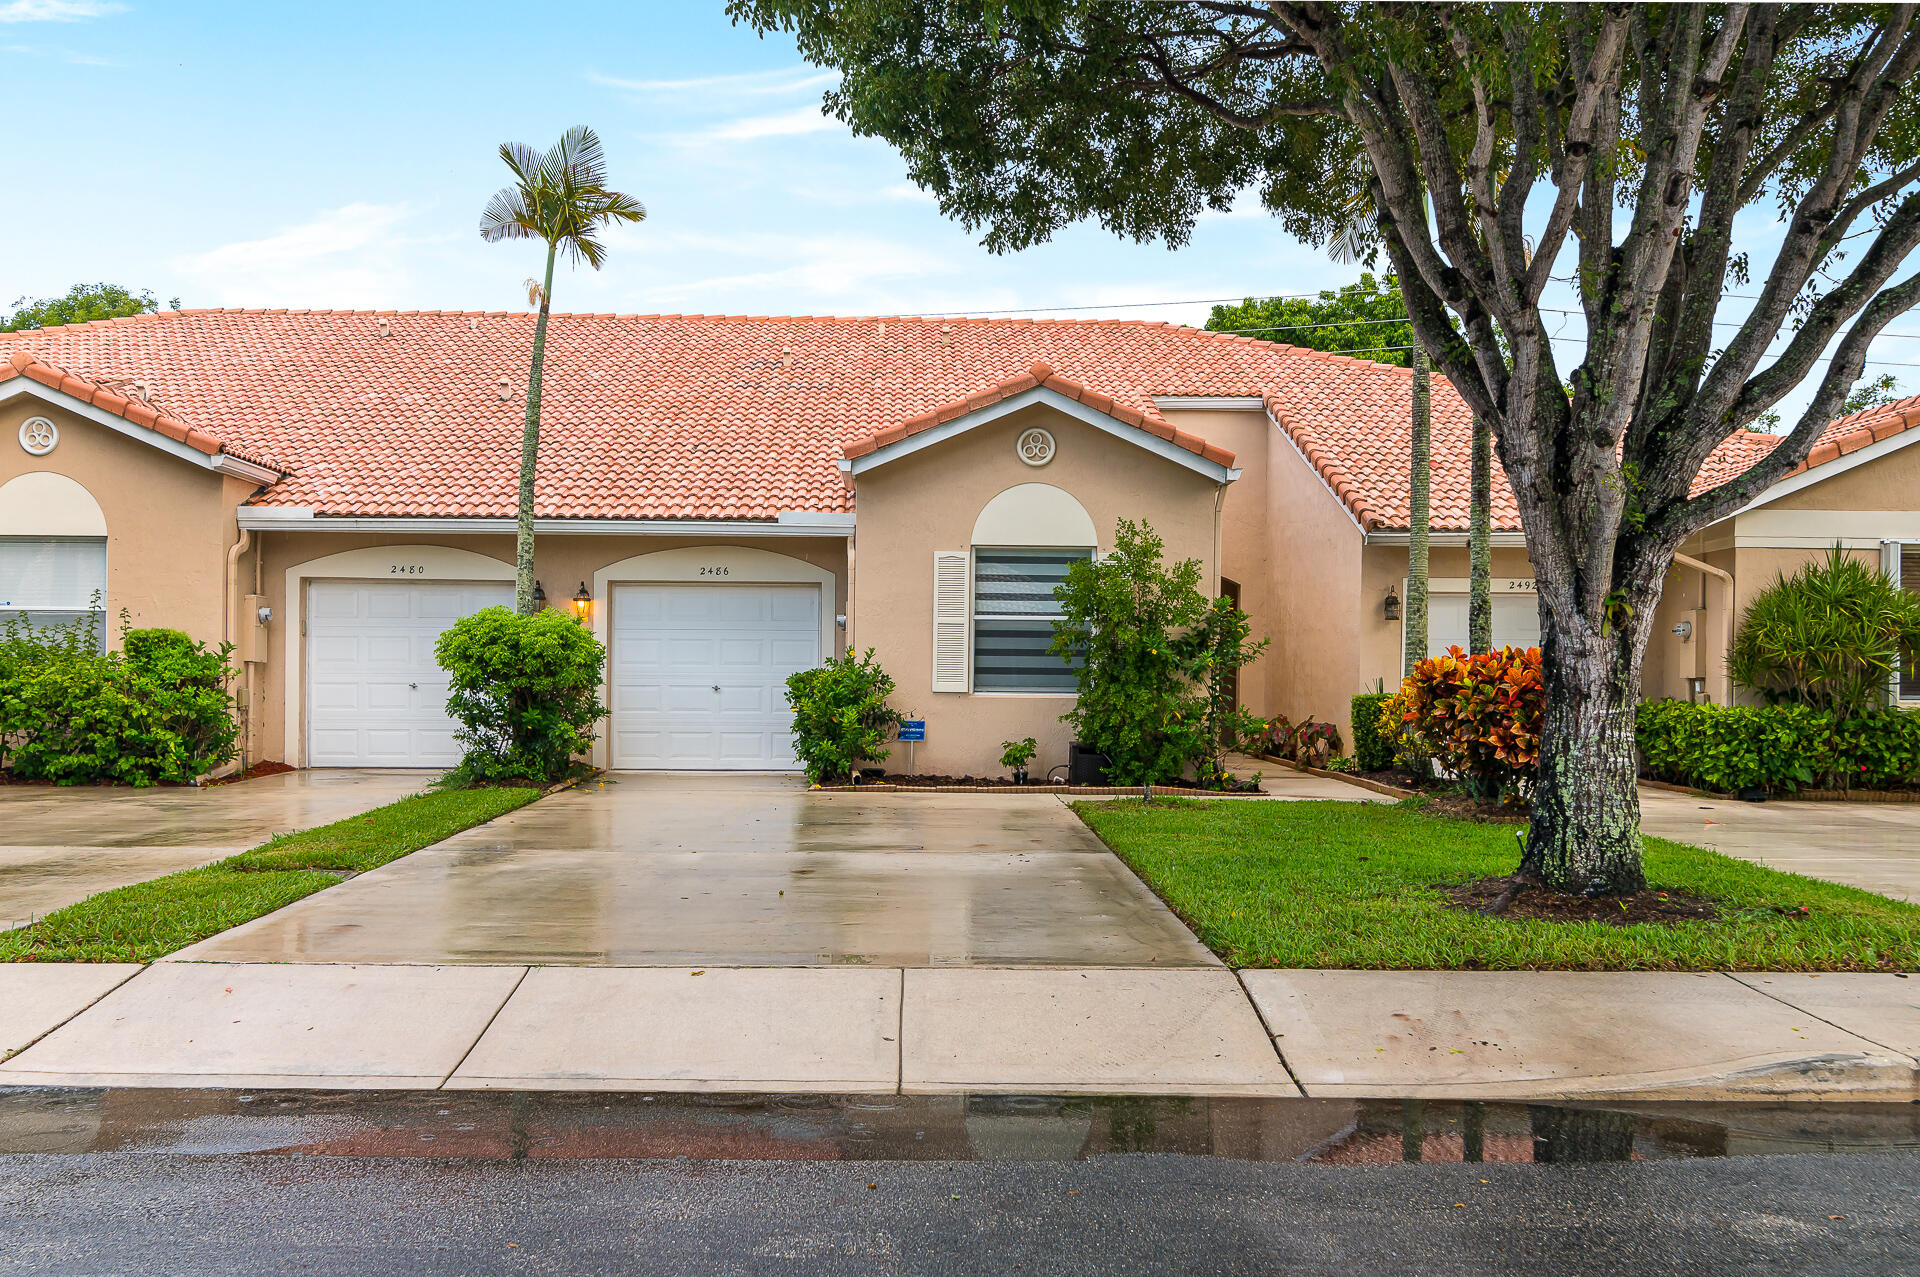 2486 S Coral Trace Circle  For Sale 10746816, FL